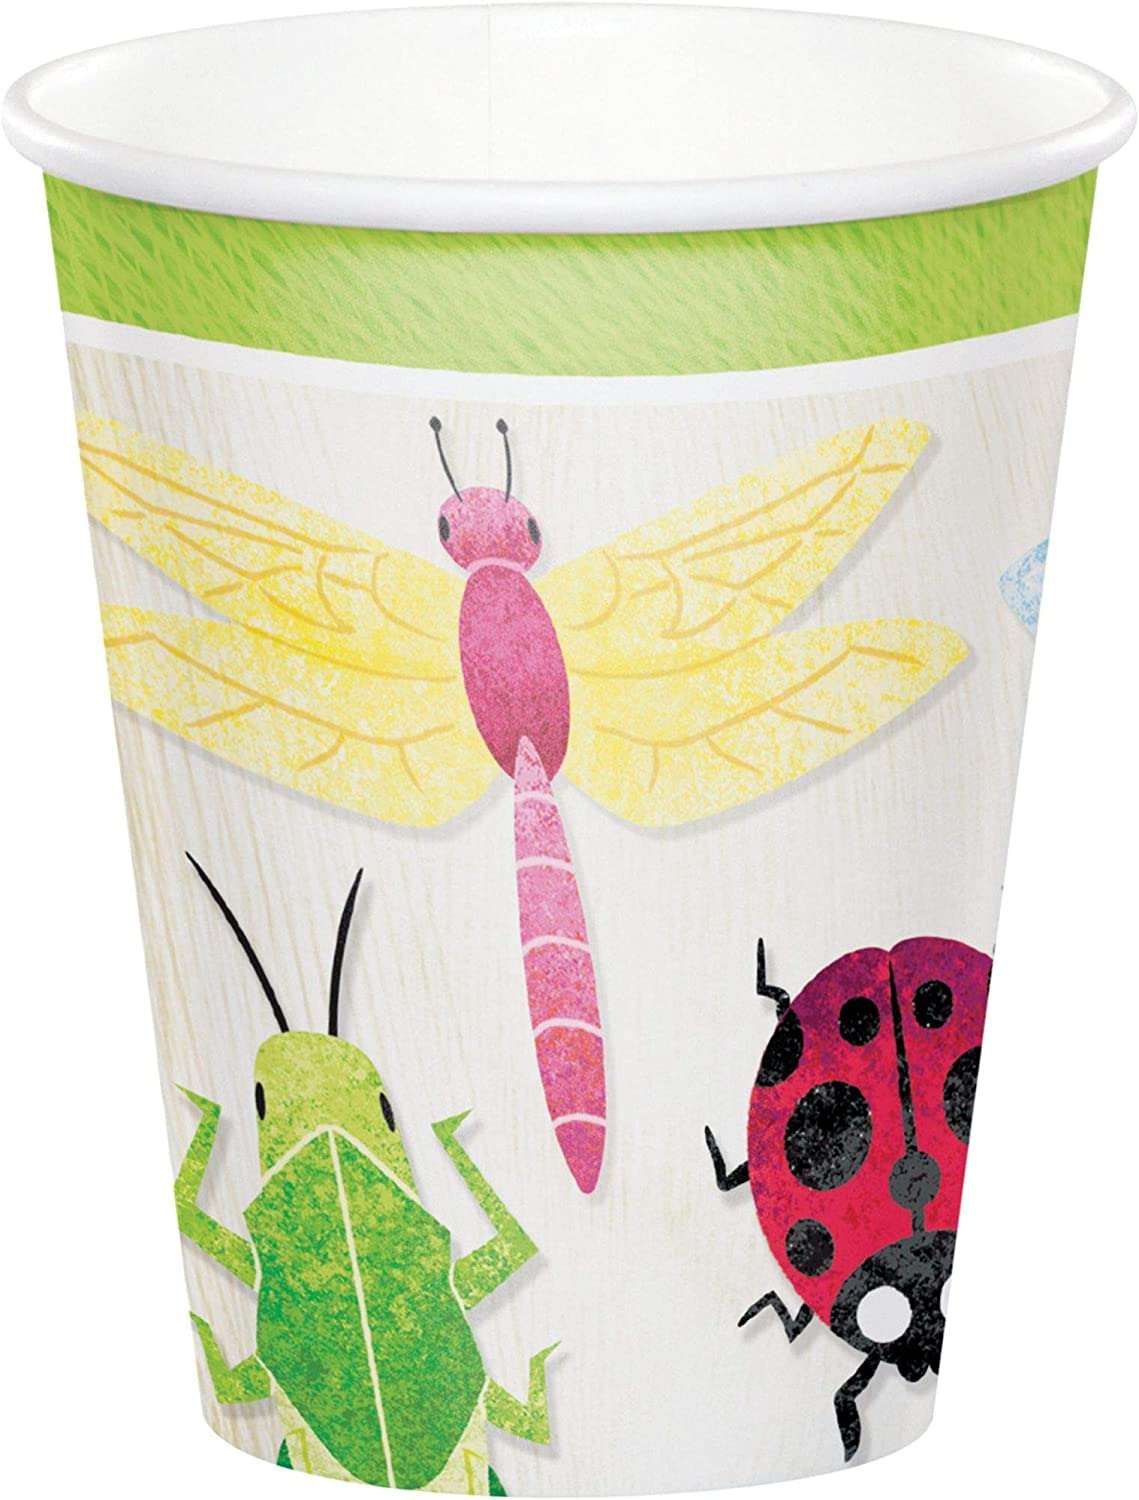 5 ☆ popular Club Pack of Chicago Mall 96 White Birthday Paper Bugs Disposable Drinki Cups